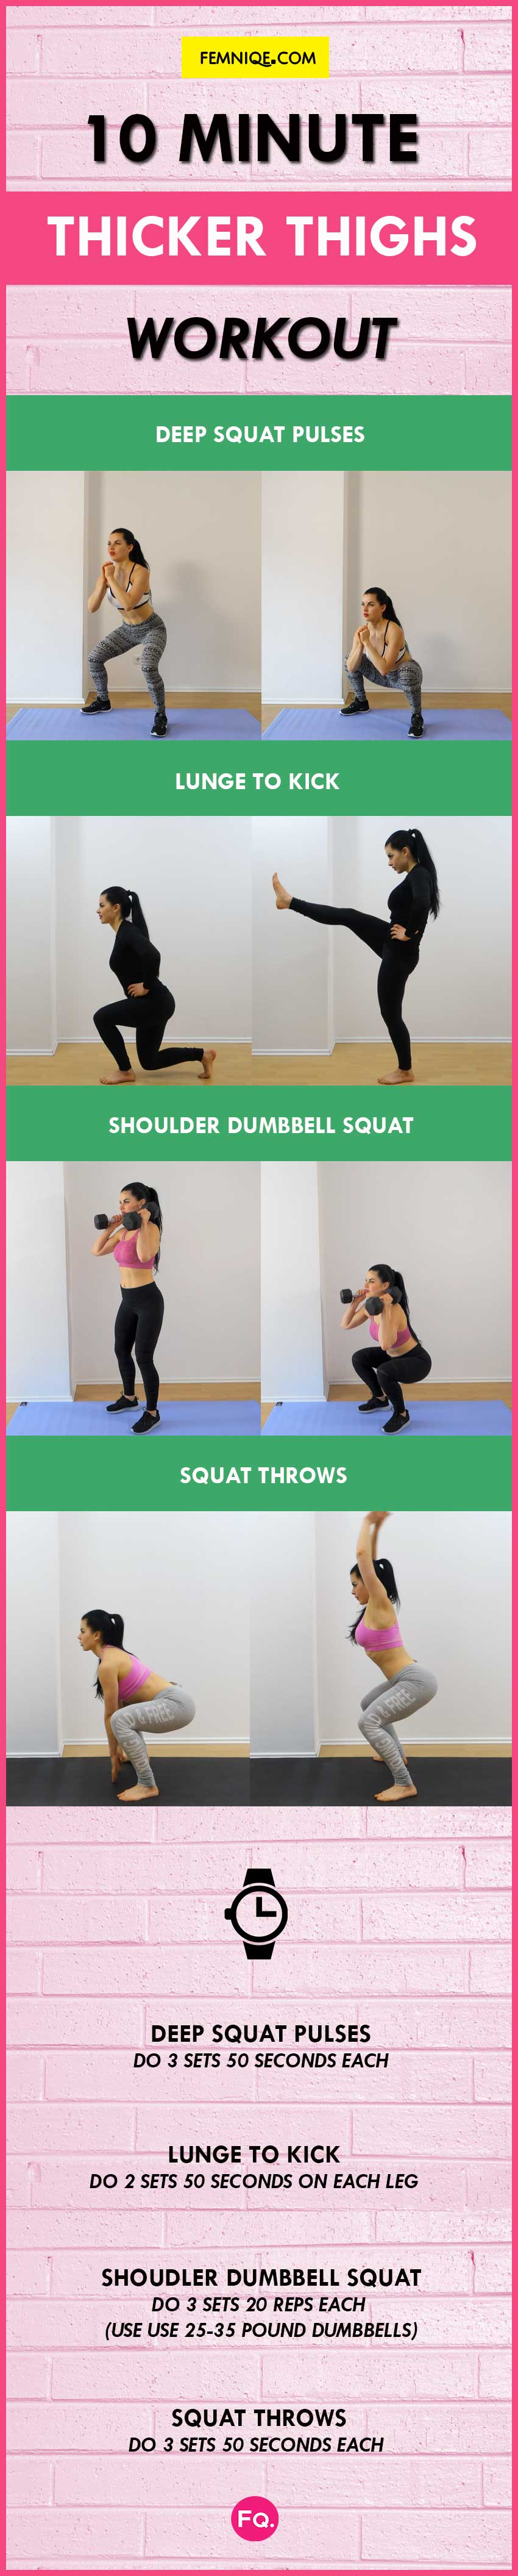 bigger thigh workout challenge